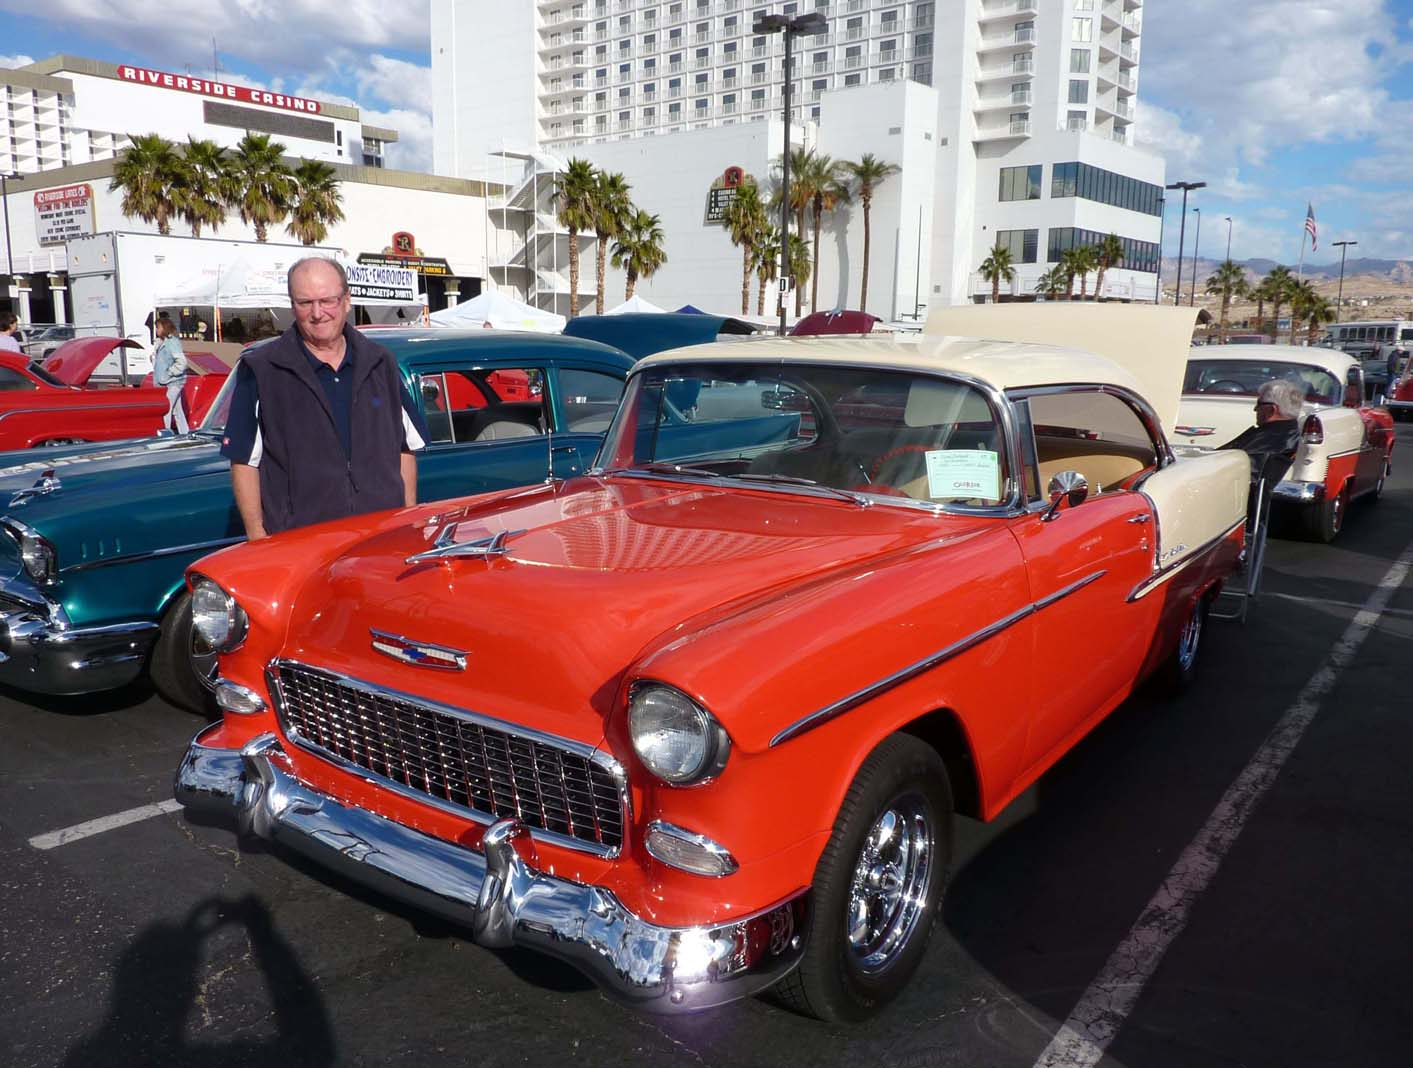 Classic Car Show Woody Plus - Riverside casino car show